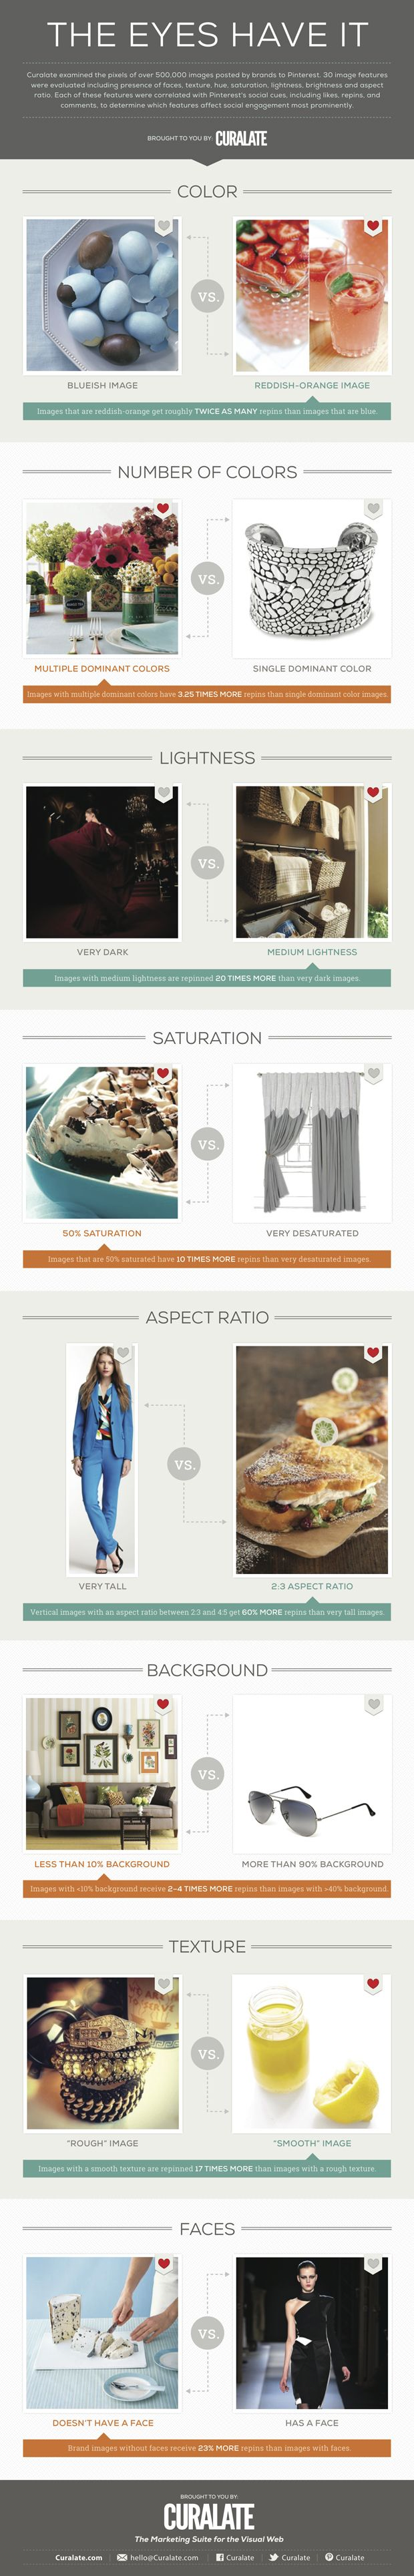 How To Optimize Your Images To Get More Repins On